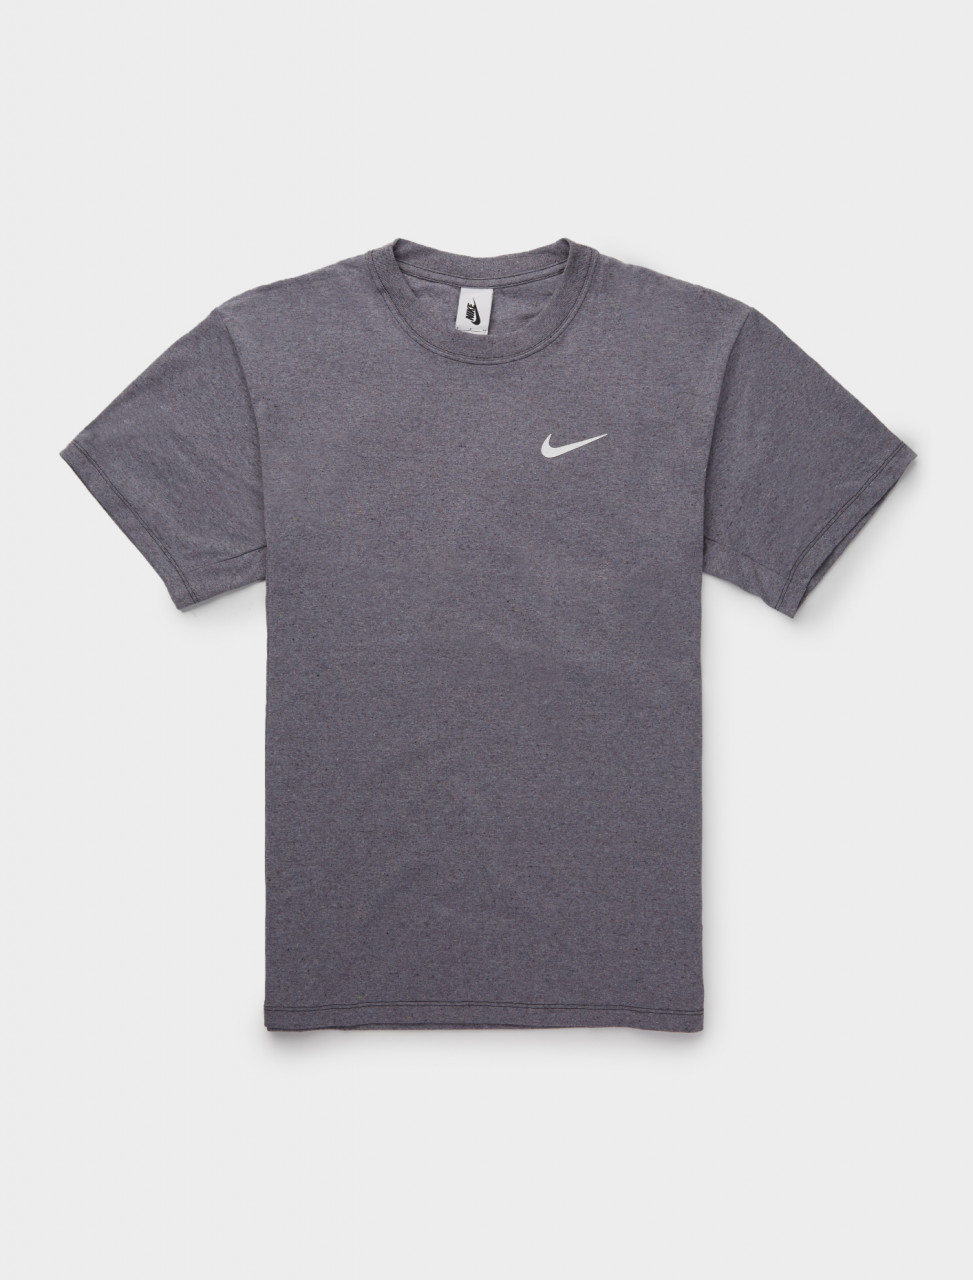 CU2234-020 NIKE SPACE HIPPIE T SHIRT